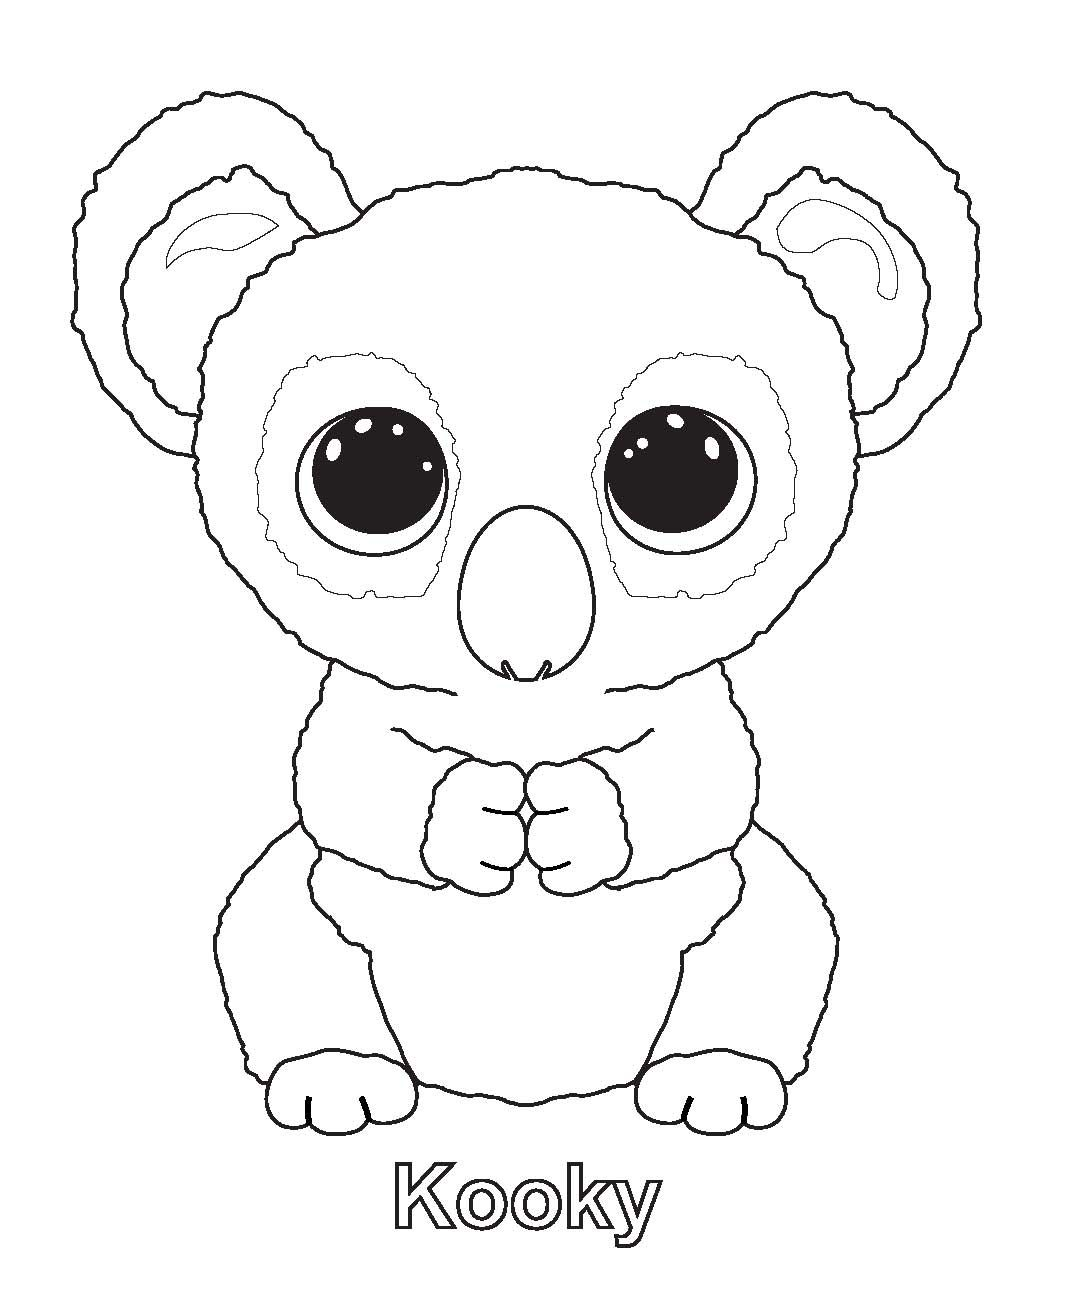 Pin By Wiepke On H Cards Cliparts Plaatjes Voor Kaarten Beanie Boo Birthdays Beanie Boo Party Penguin Coloring Pages